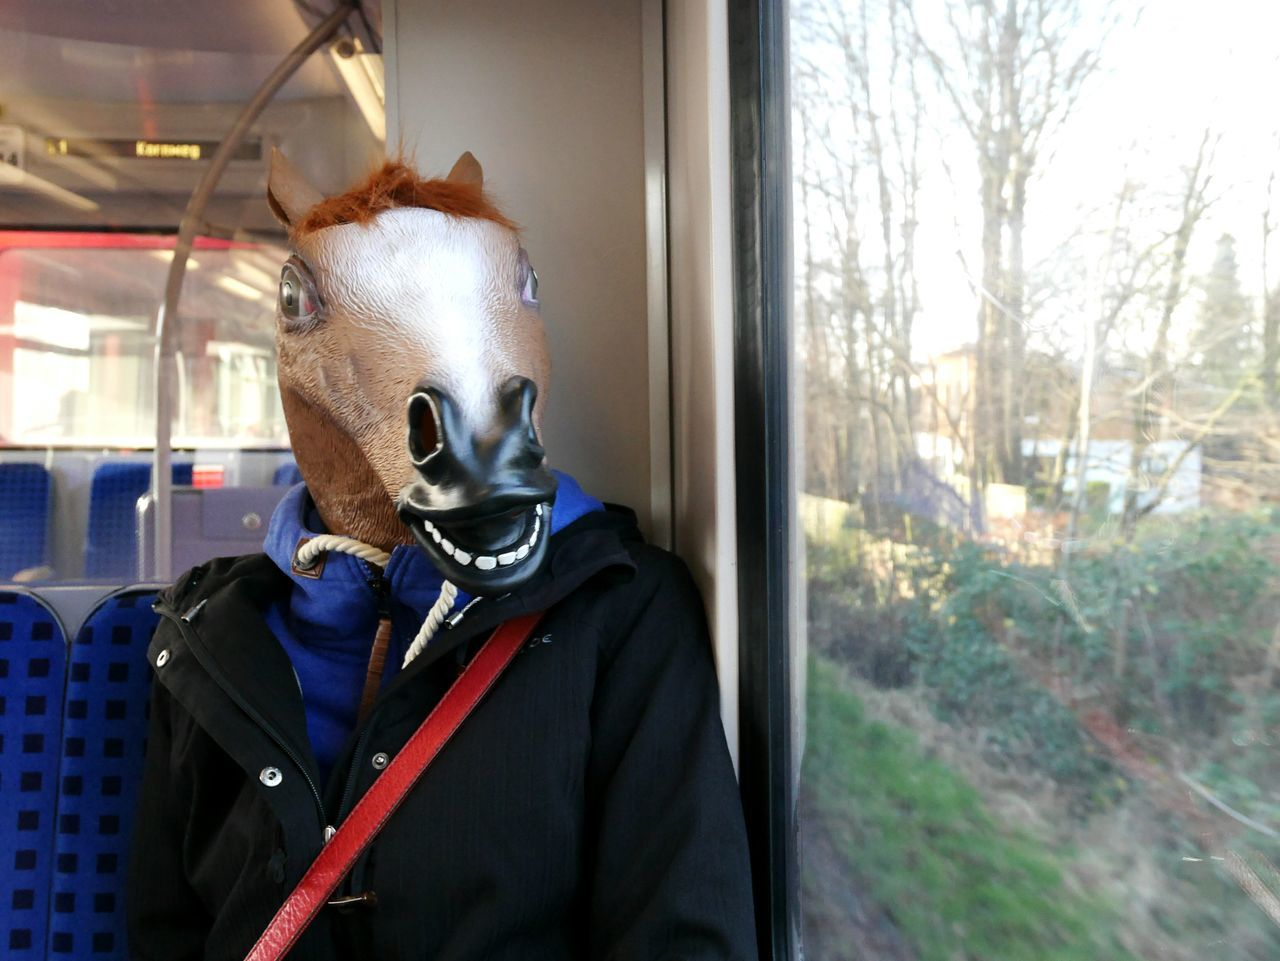 Man Wearing Horse Mask In Train